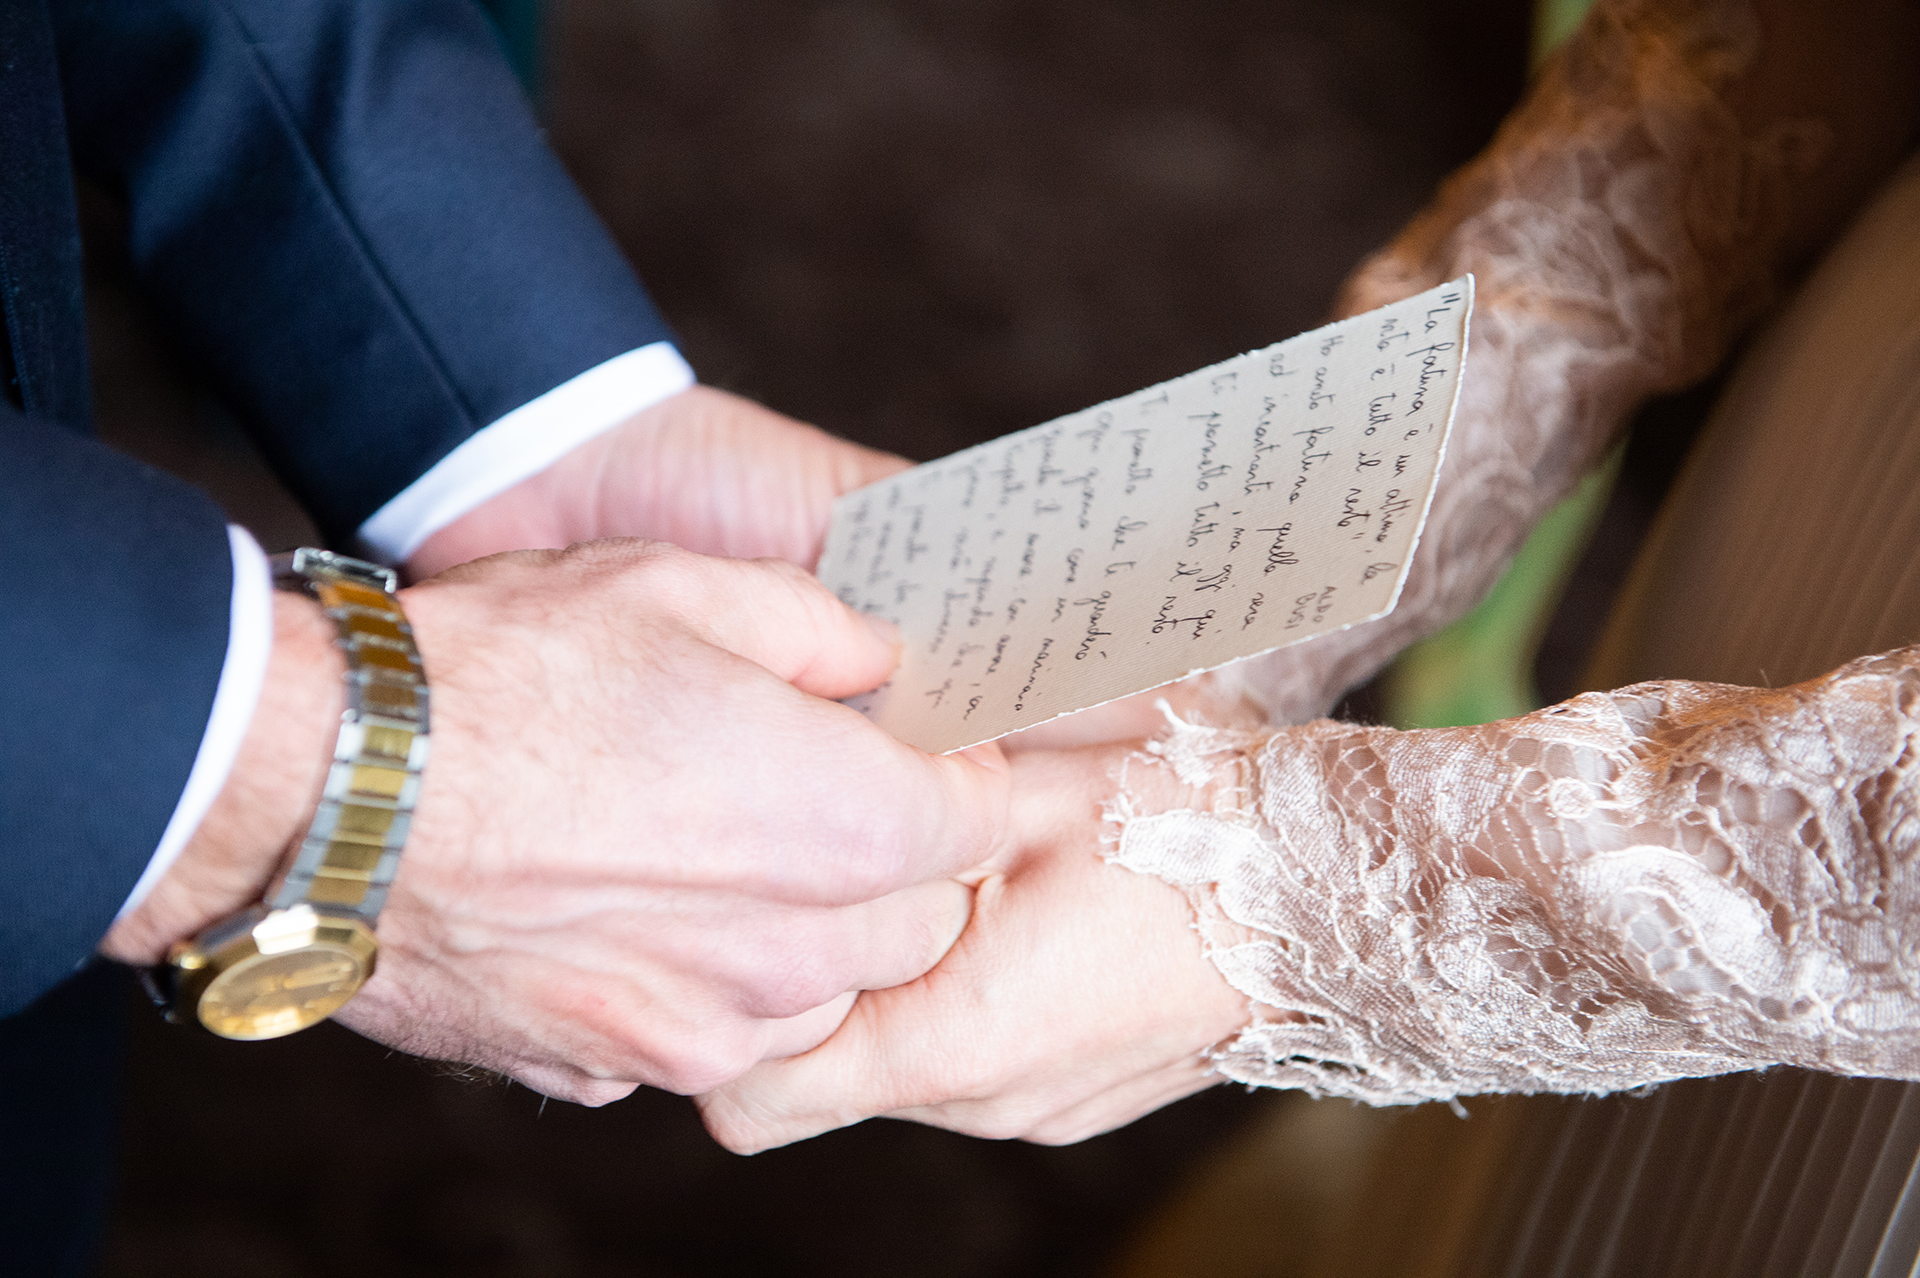 Elopement Detail Image of Hands During Ceremony Speech - Italy, Lombardia, Pavia